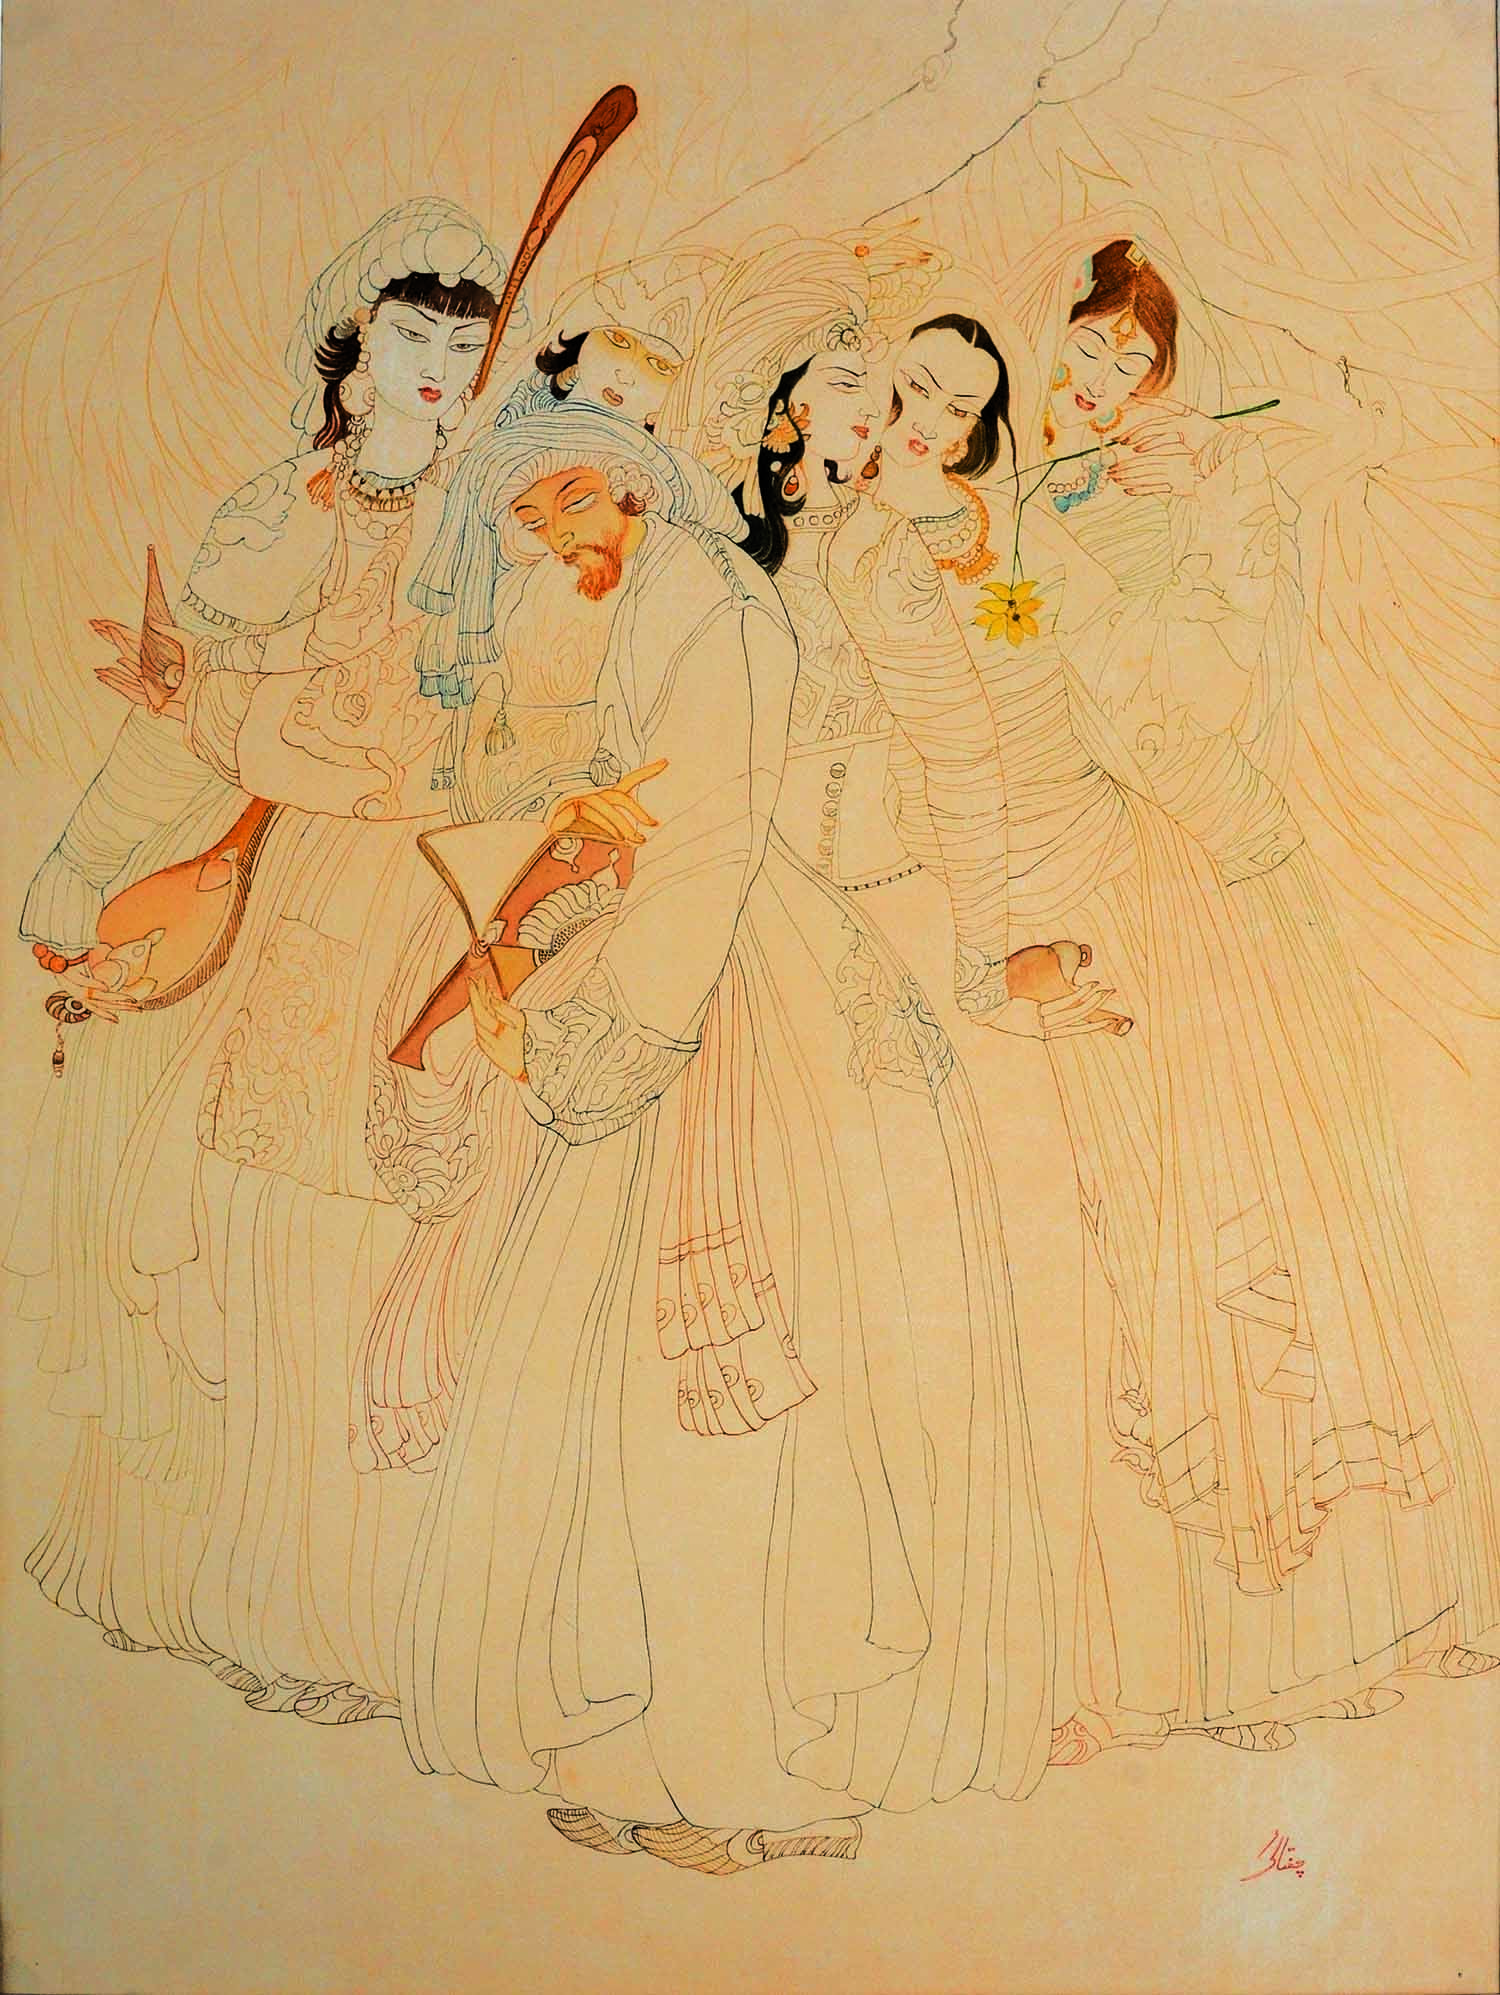 *The form of existence is an effect of the self,/ Whatsoever thou seest is a secret of the self,/ When the self awoke to consciousness,/ It revealed the universe of thought.* Chughtai's masterpiece *More Than Shadow* was created in response to the preceding couplets of Allama Iqbal.